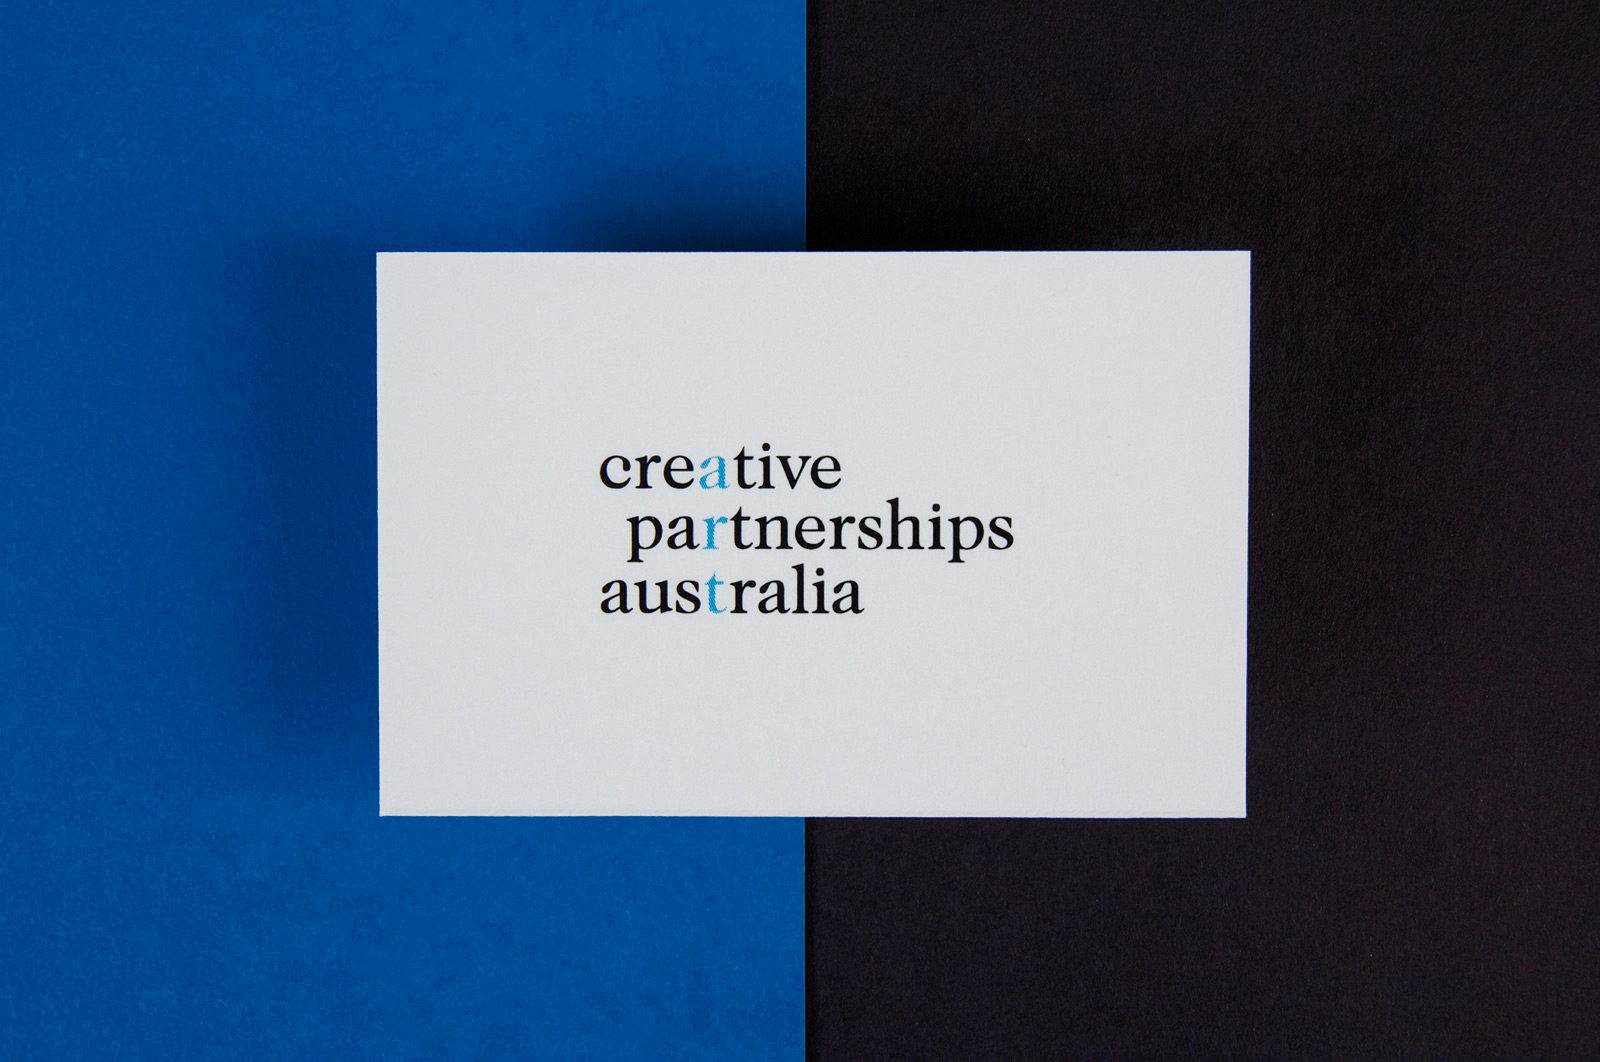 creative_partnerships_australia_business_card_02512.jpg